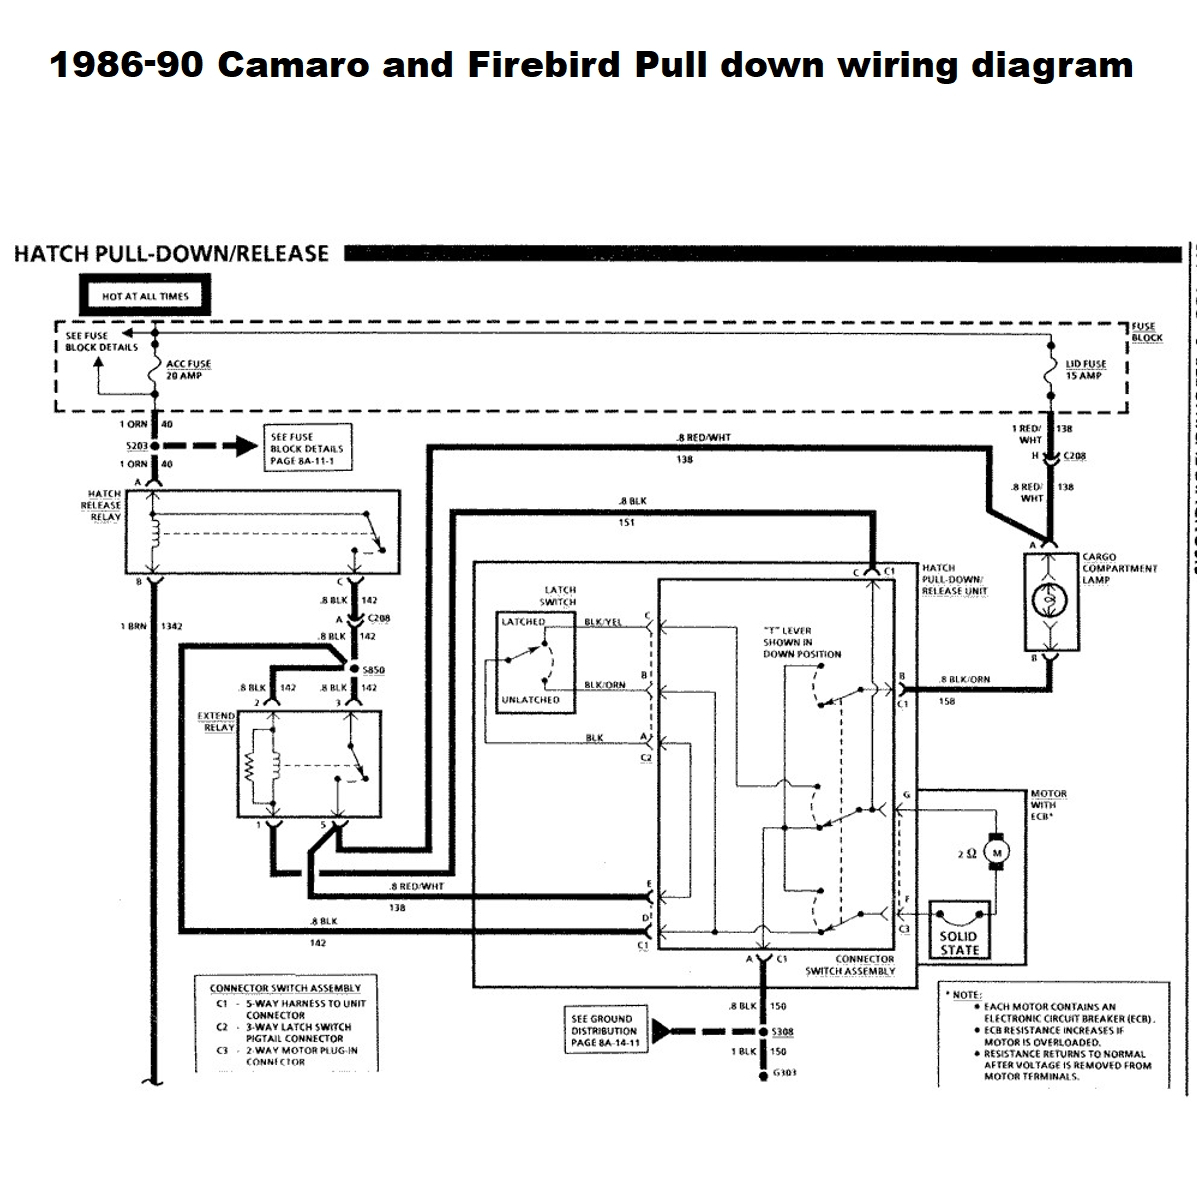 1986-92 Camaro and Firebird Pull down trouble shooting tips. Wiring diagram  - WestCoast AutoParts.comWestCoast AutoParts.com